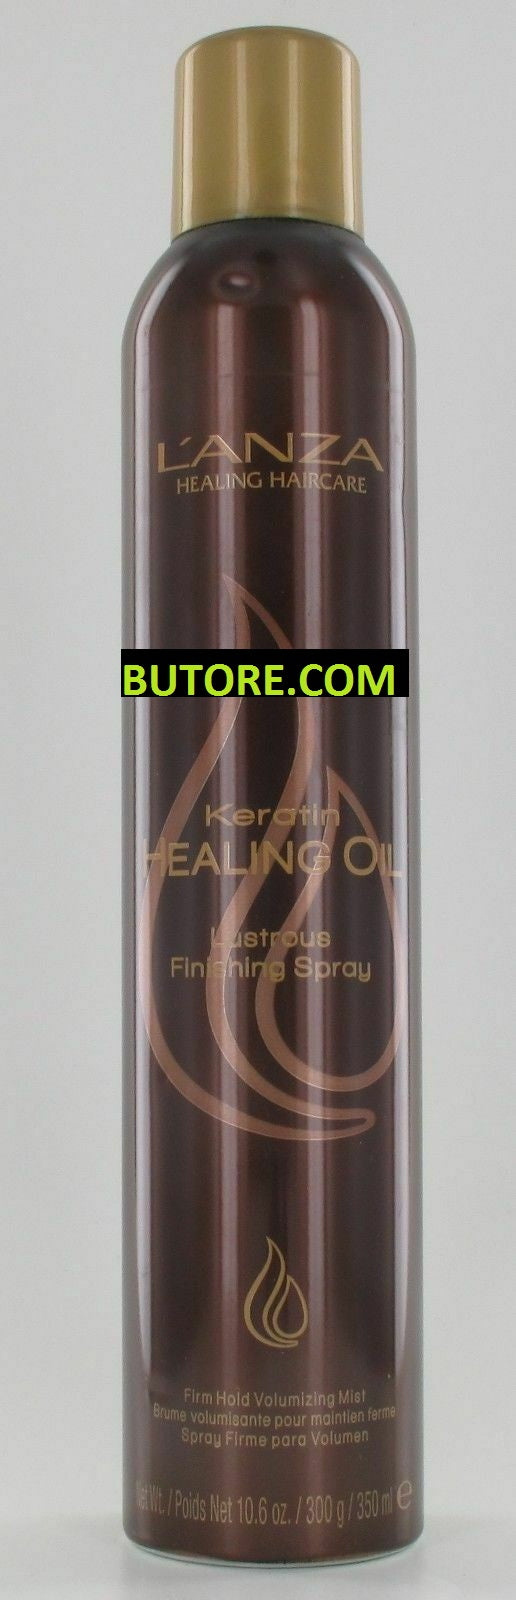 Lanza Keratin Healing Oil Lustrous Finishing 10.6oz